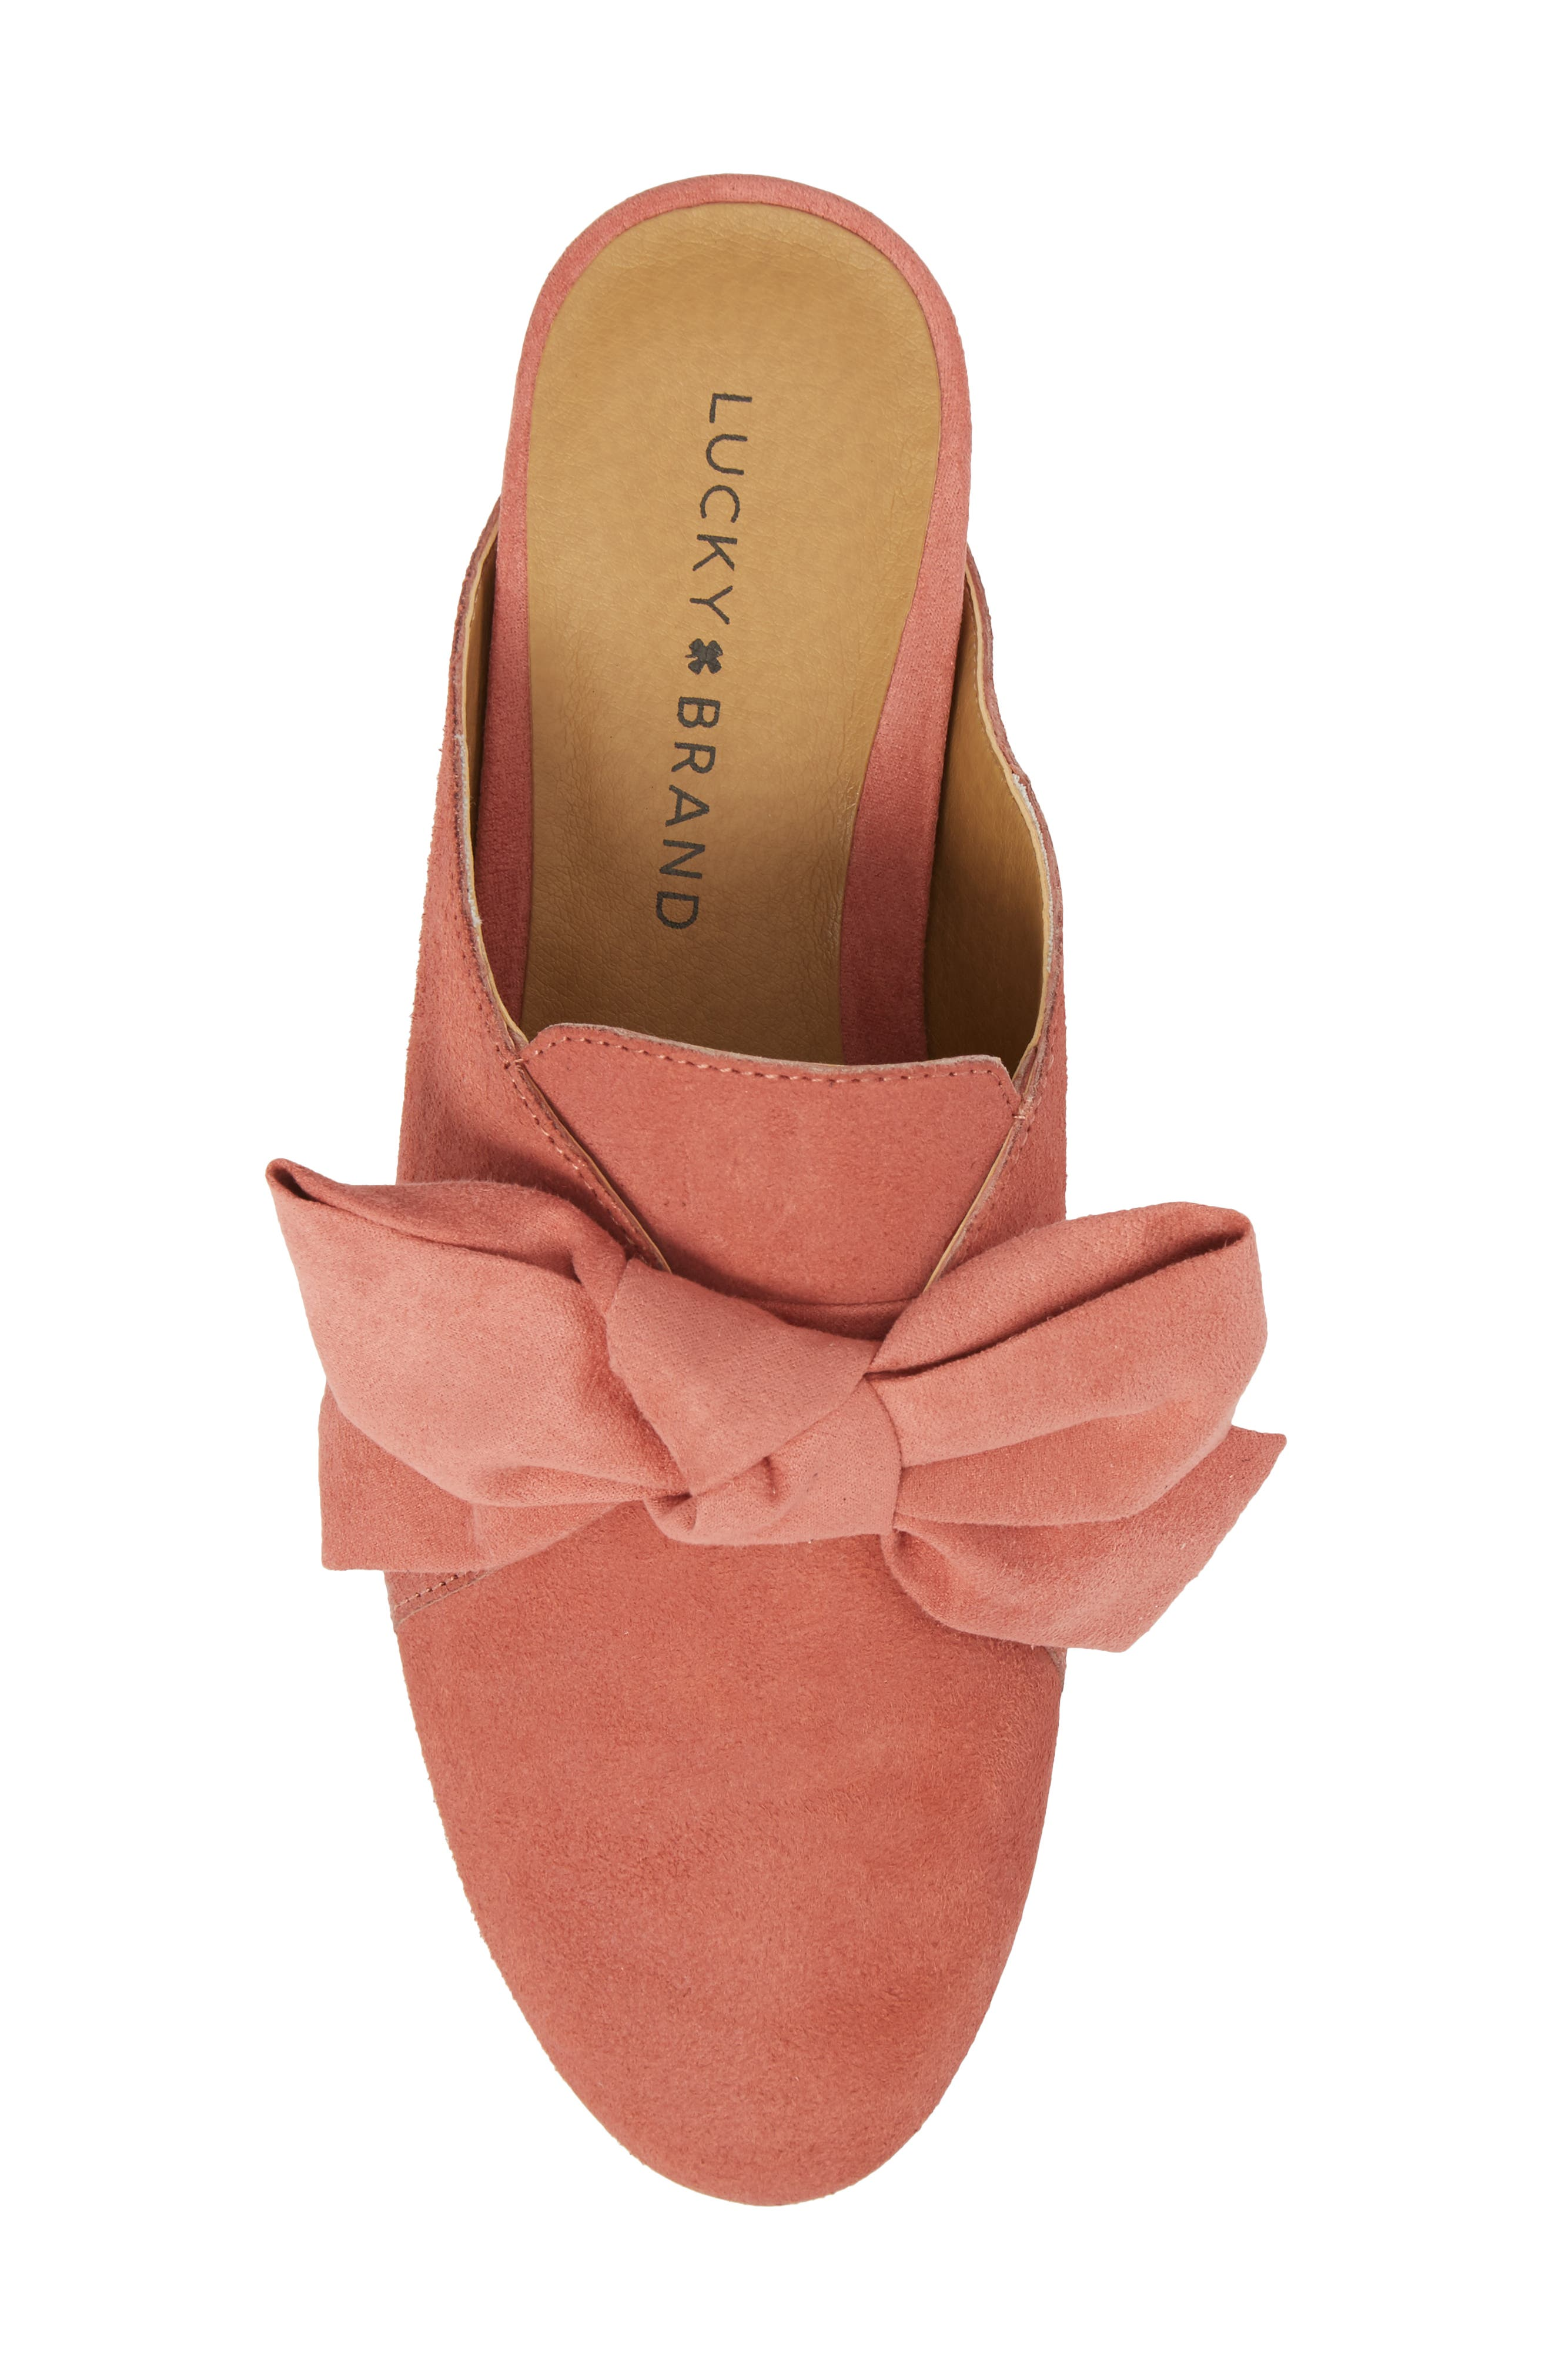 Florean Bow Loafer Mule,                             Alternate thumbnail 5, color,                             Canyon Rose Leather